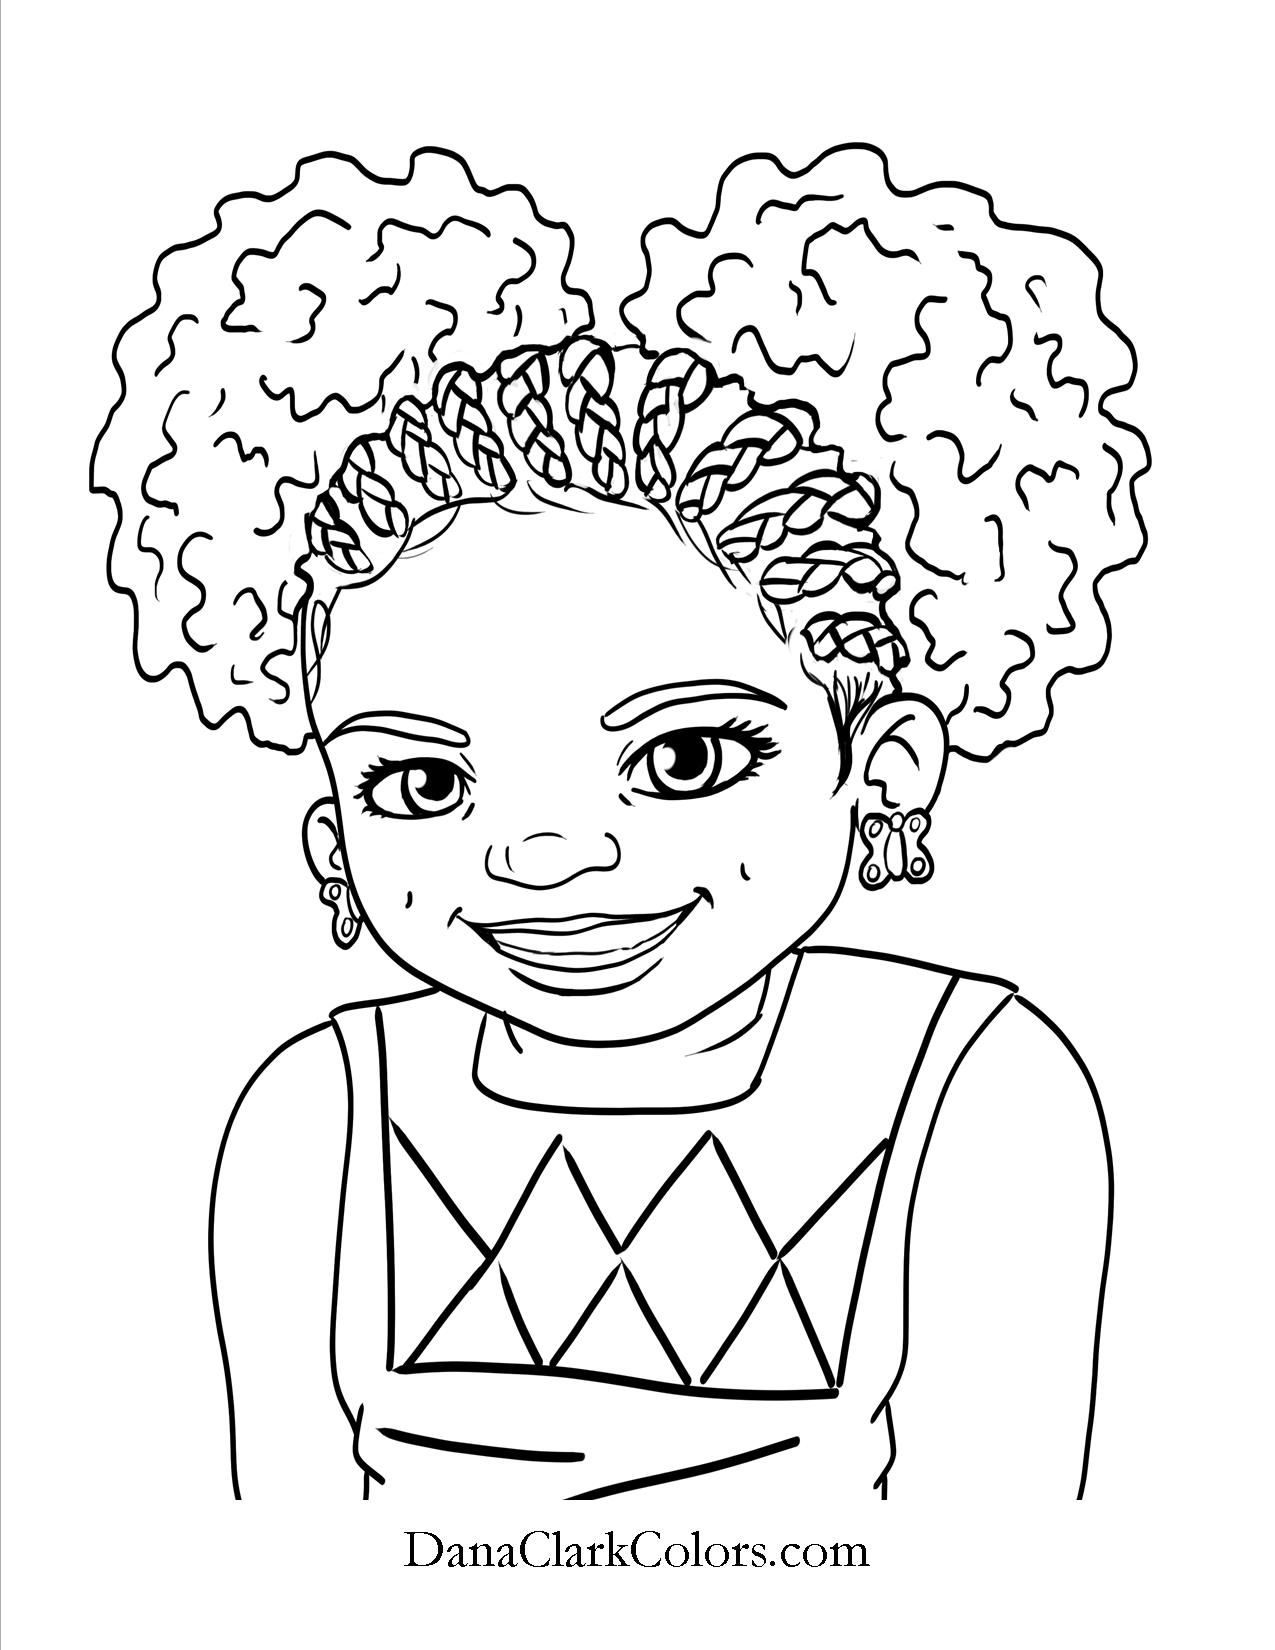 black kids coloring page #africanamericancoloringpage | learn ... - Childrens Coloring Pages Girls